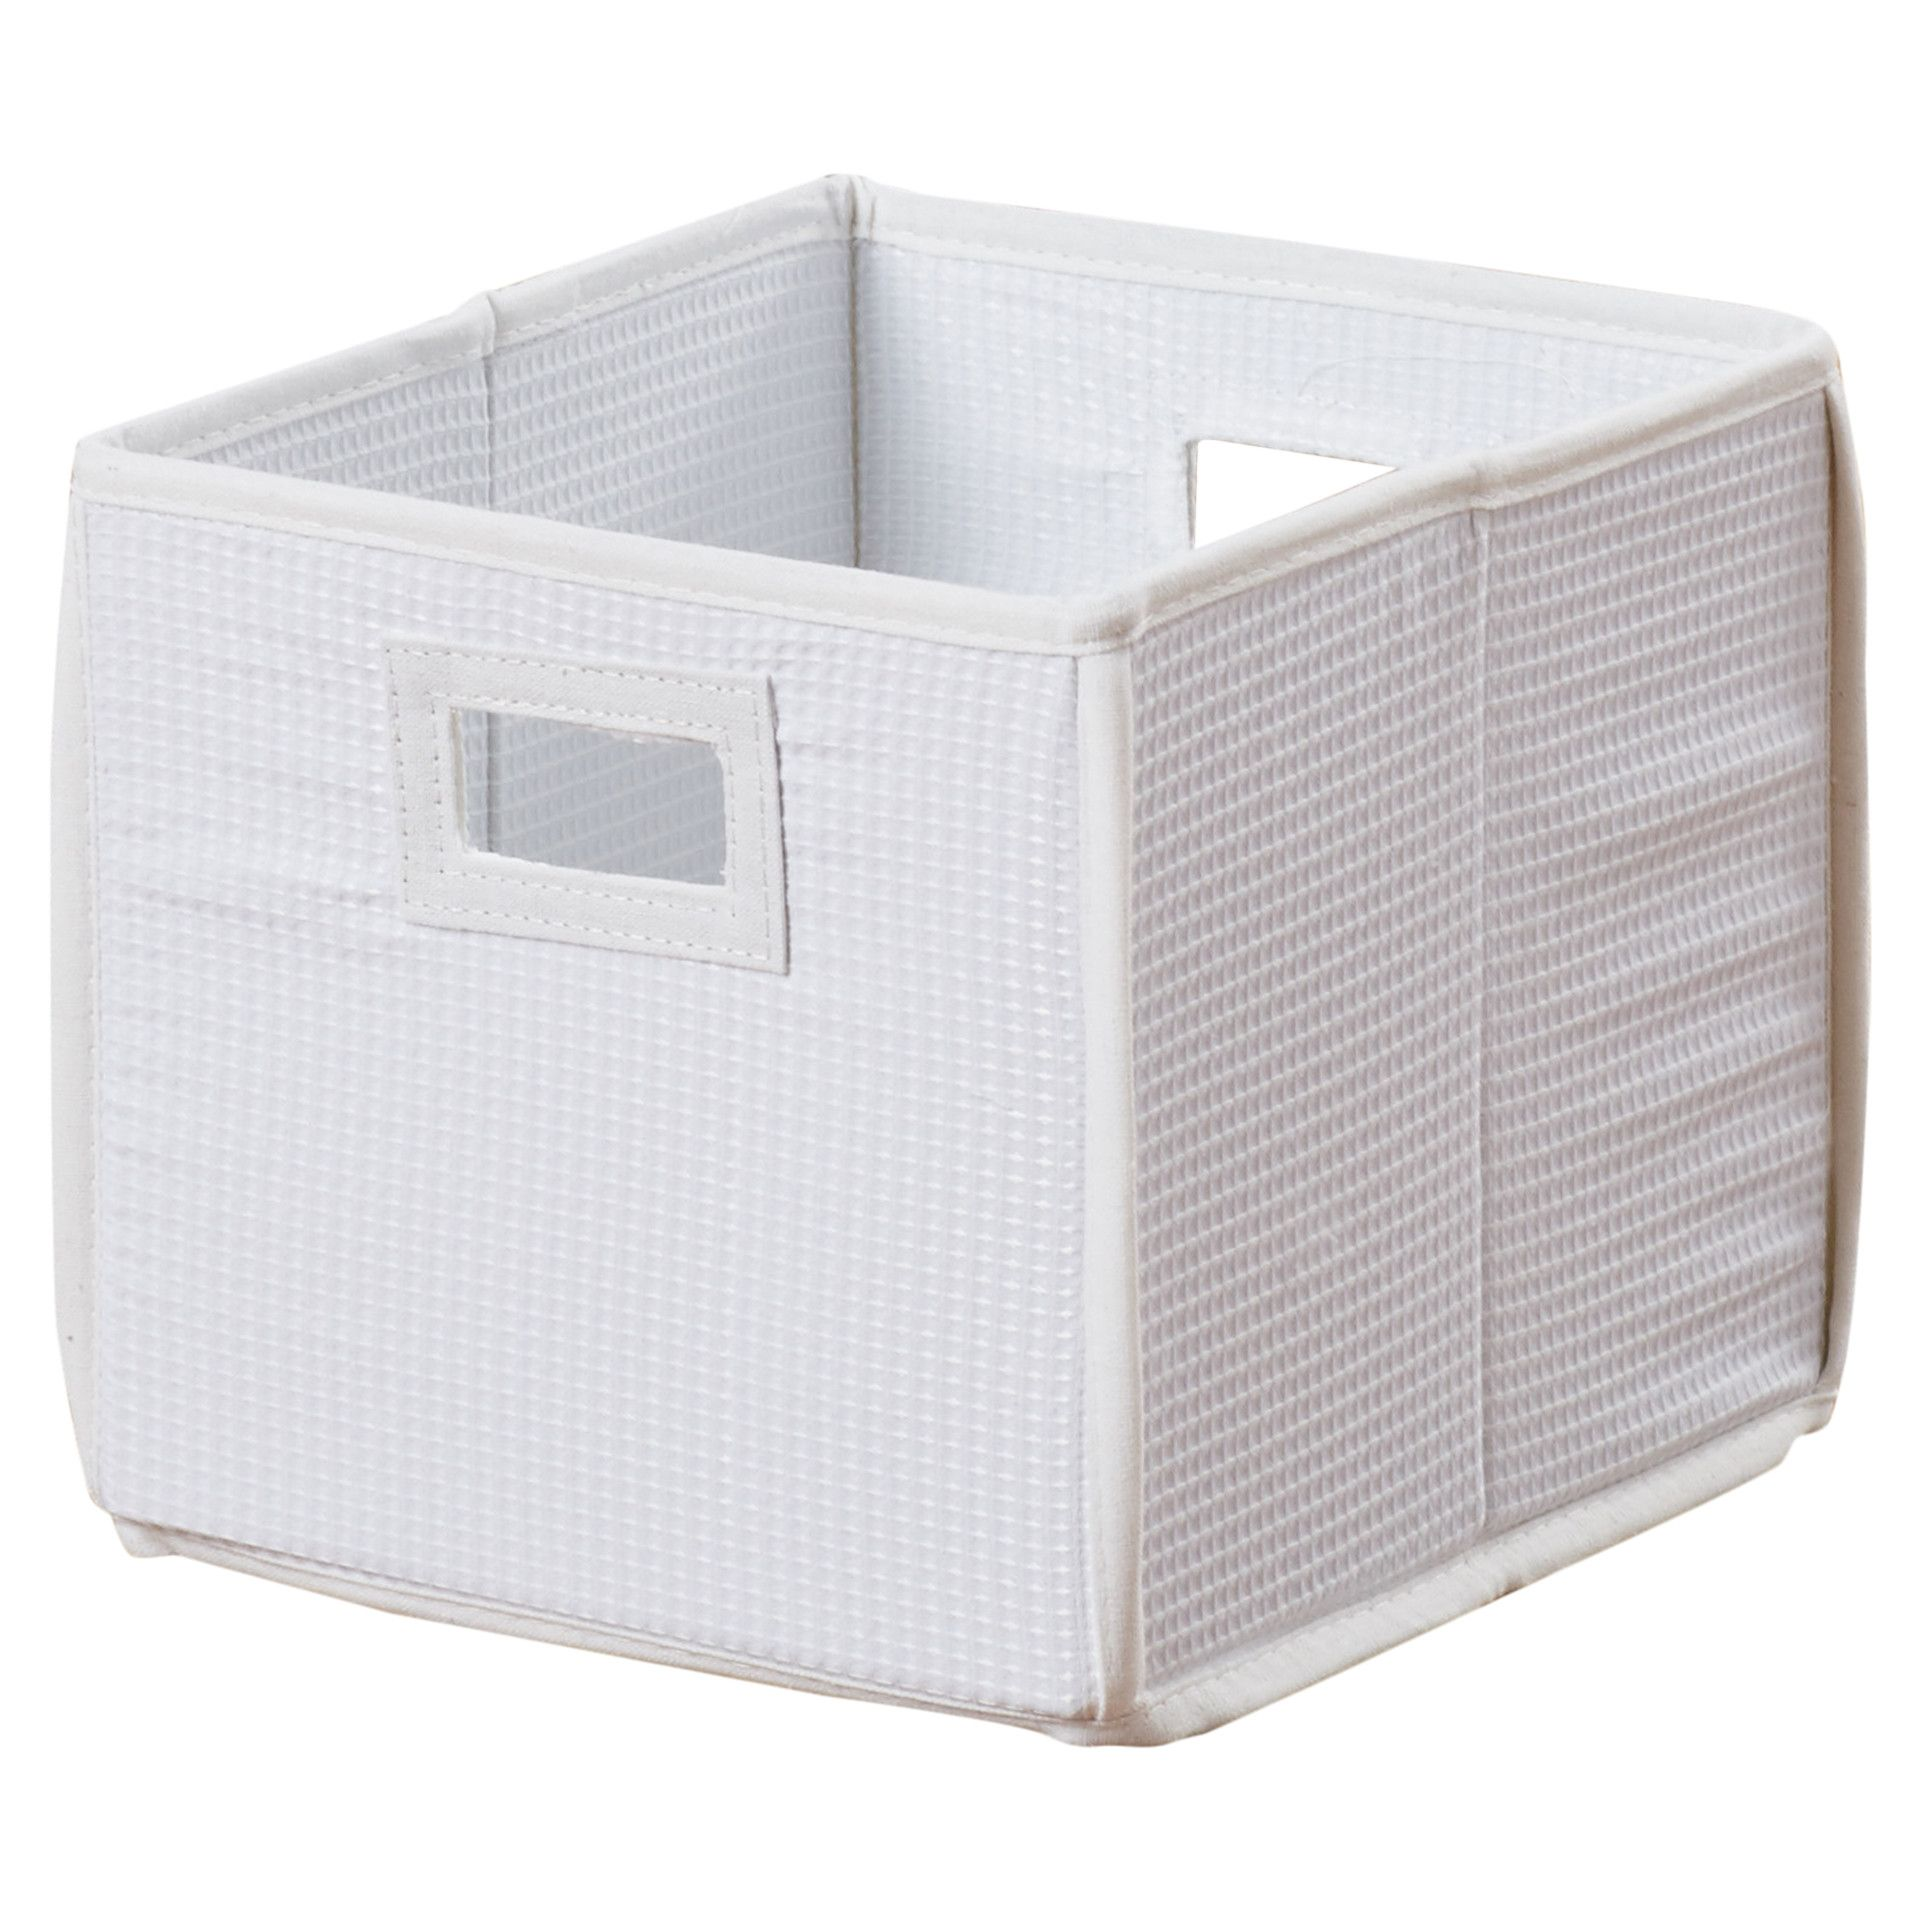 Sebastian Folding Storage Cube Fabric Storage Bins Cube Storage